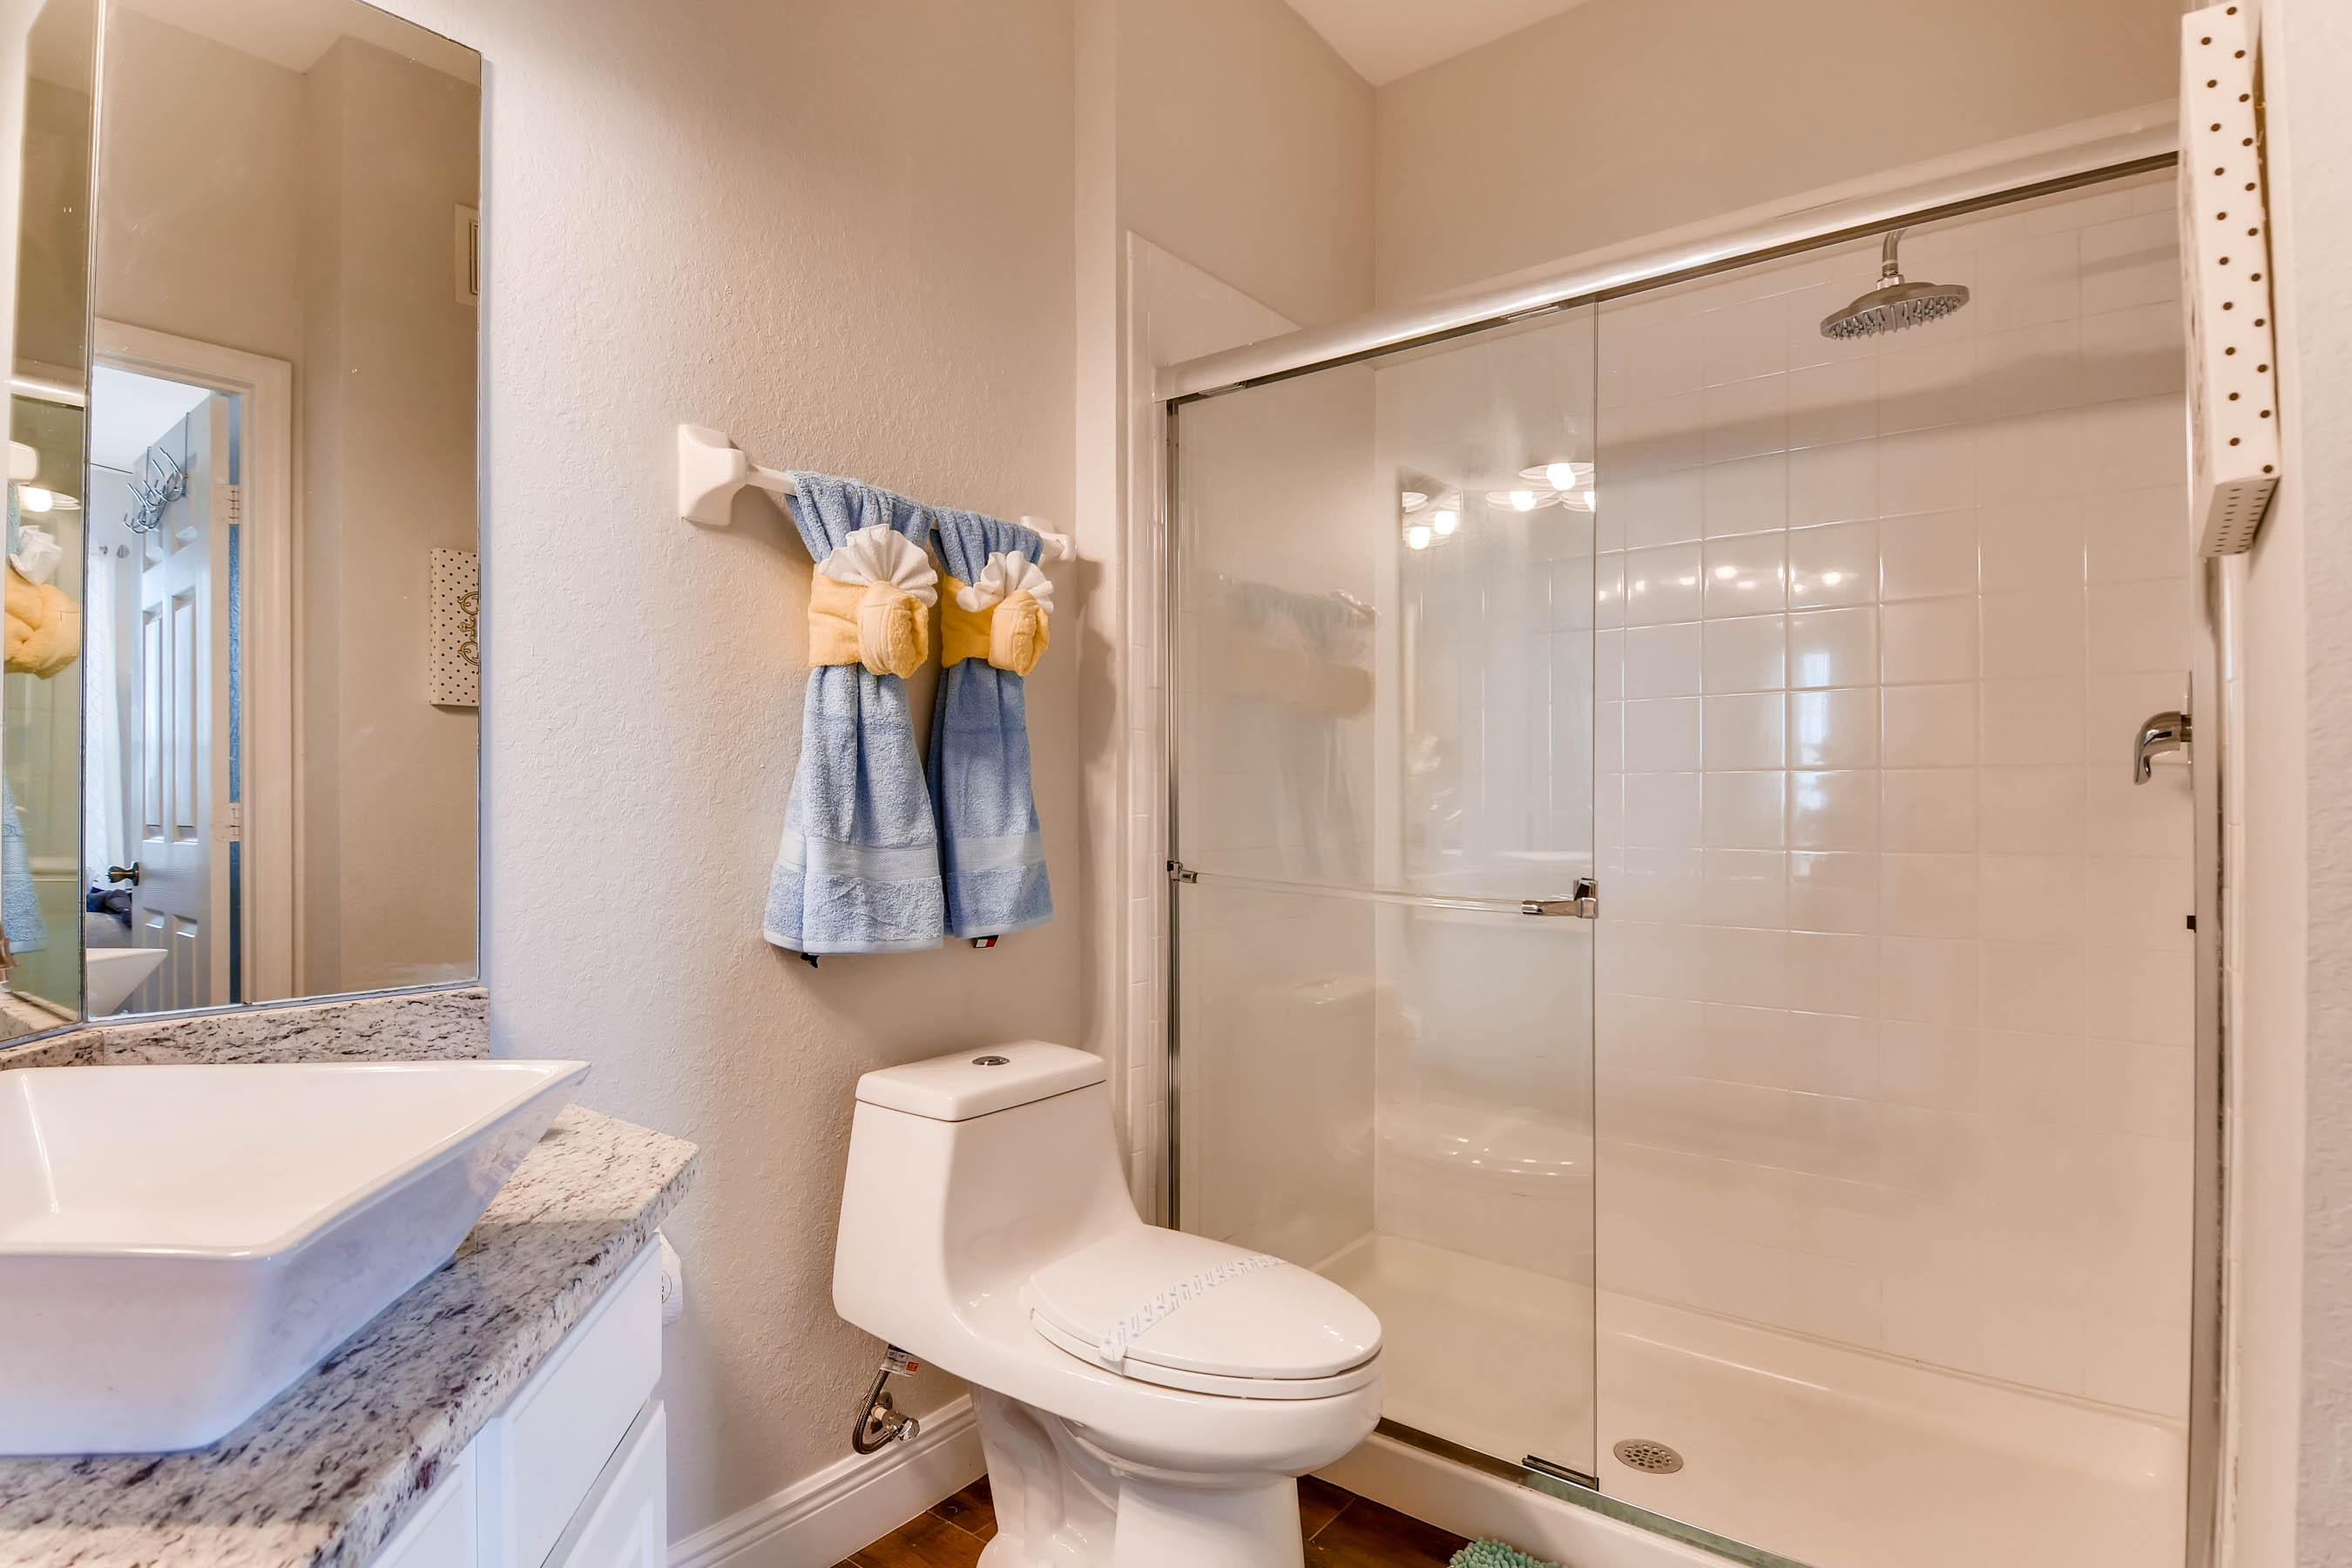 En-suite with upgraded fixtures and walk-in shower with rain shower head